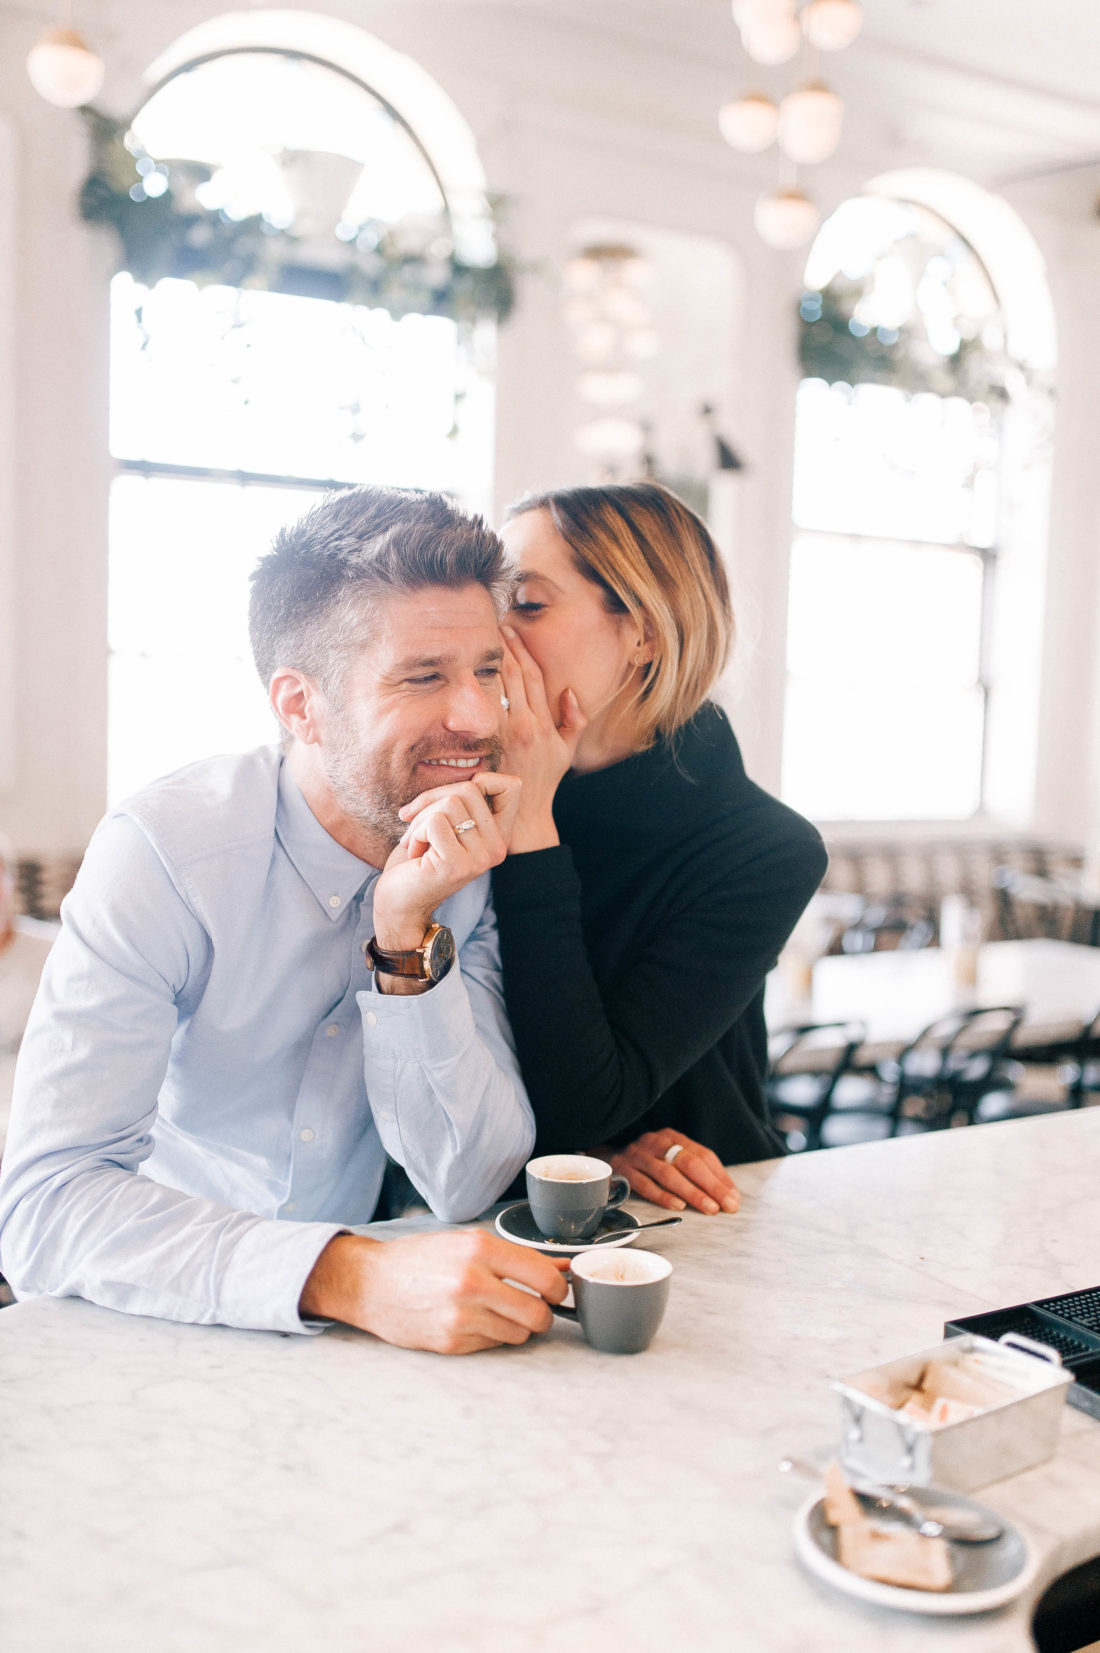 Eva Amurri Martino stands at the bar of an NYC restaurant and whispers in to husband Kyle Martino's ear